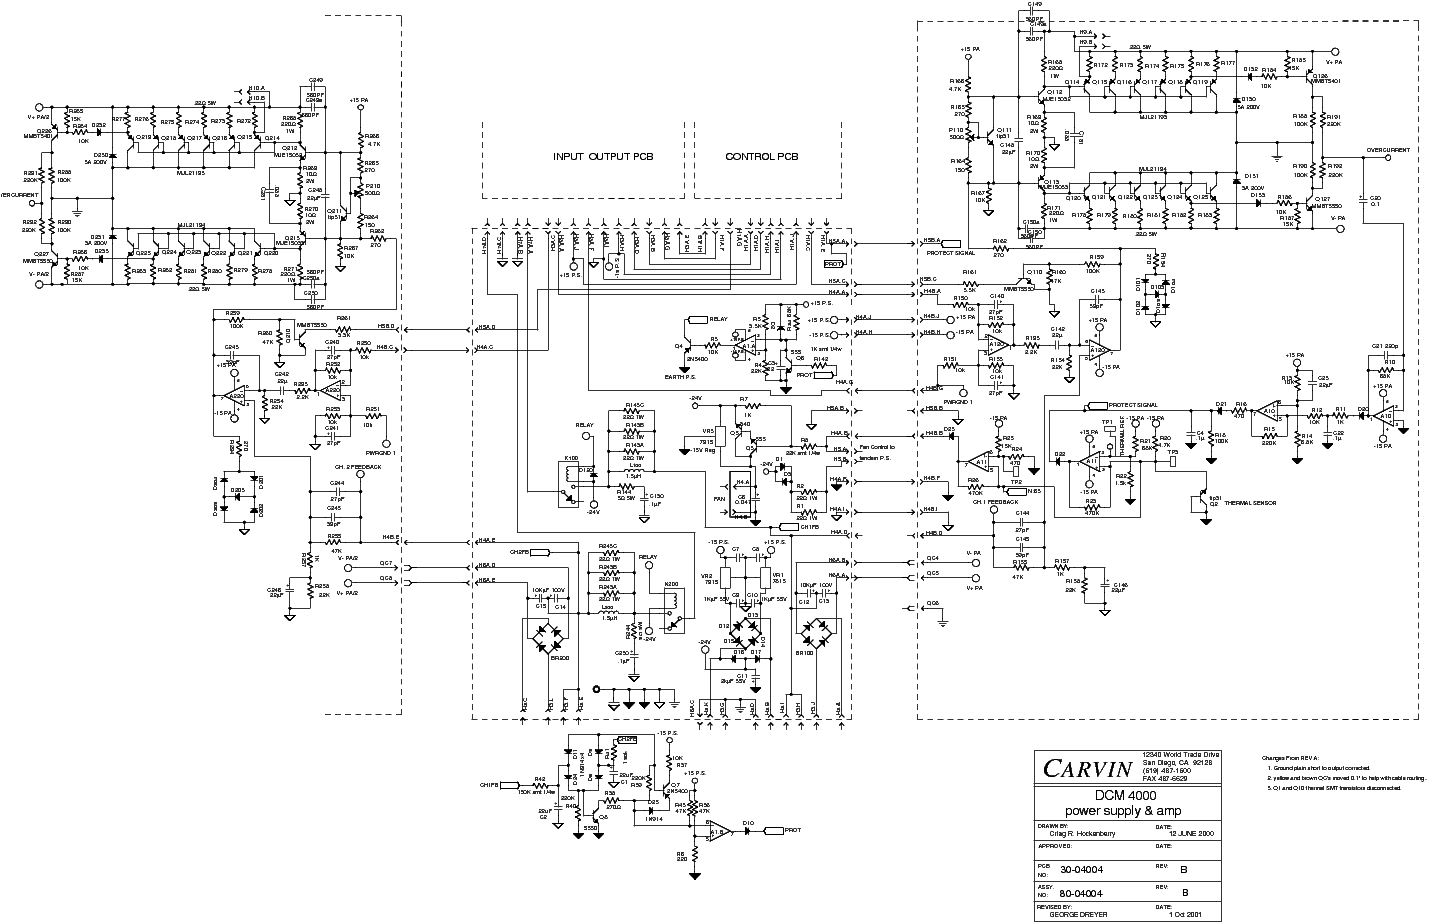 carvin dcm4000 power supply sch service manual download  schematics  eeprom  repair info for